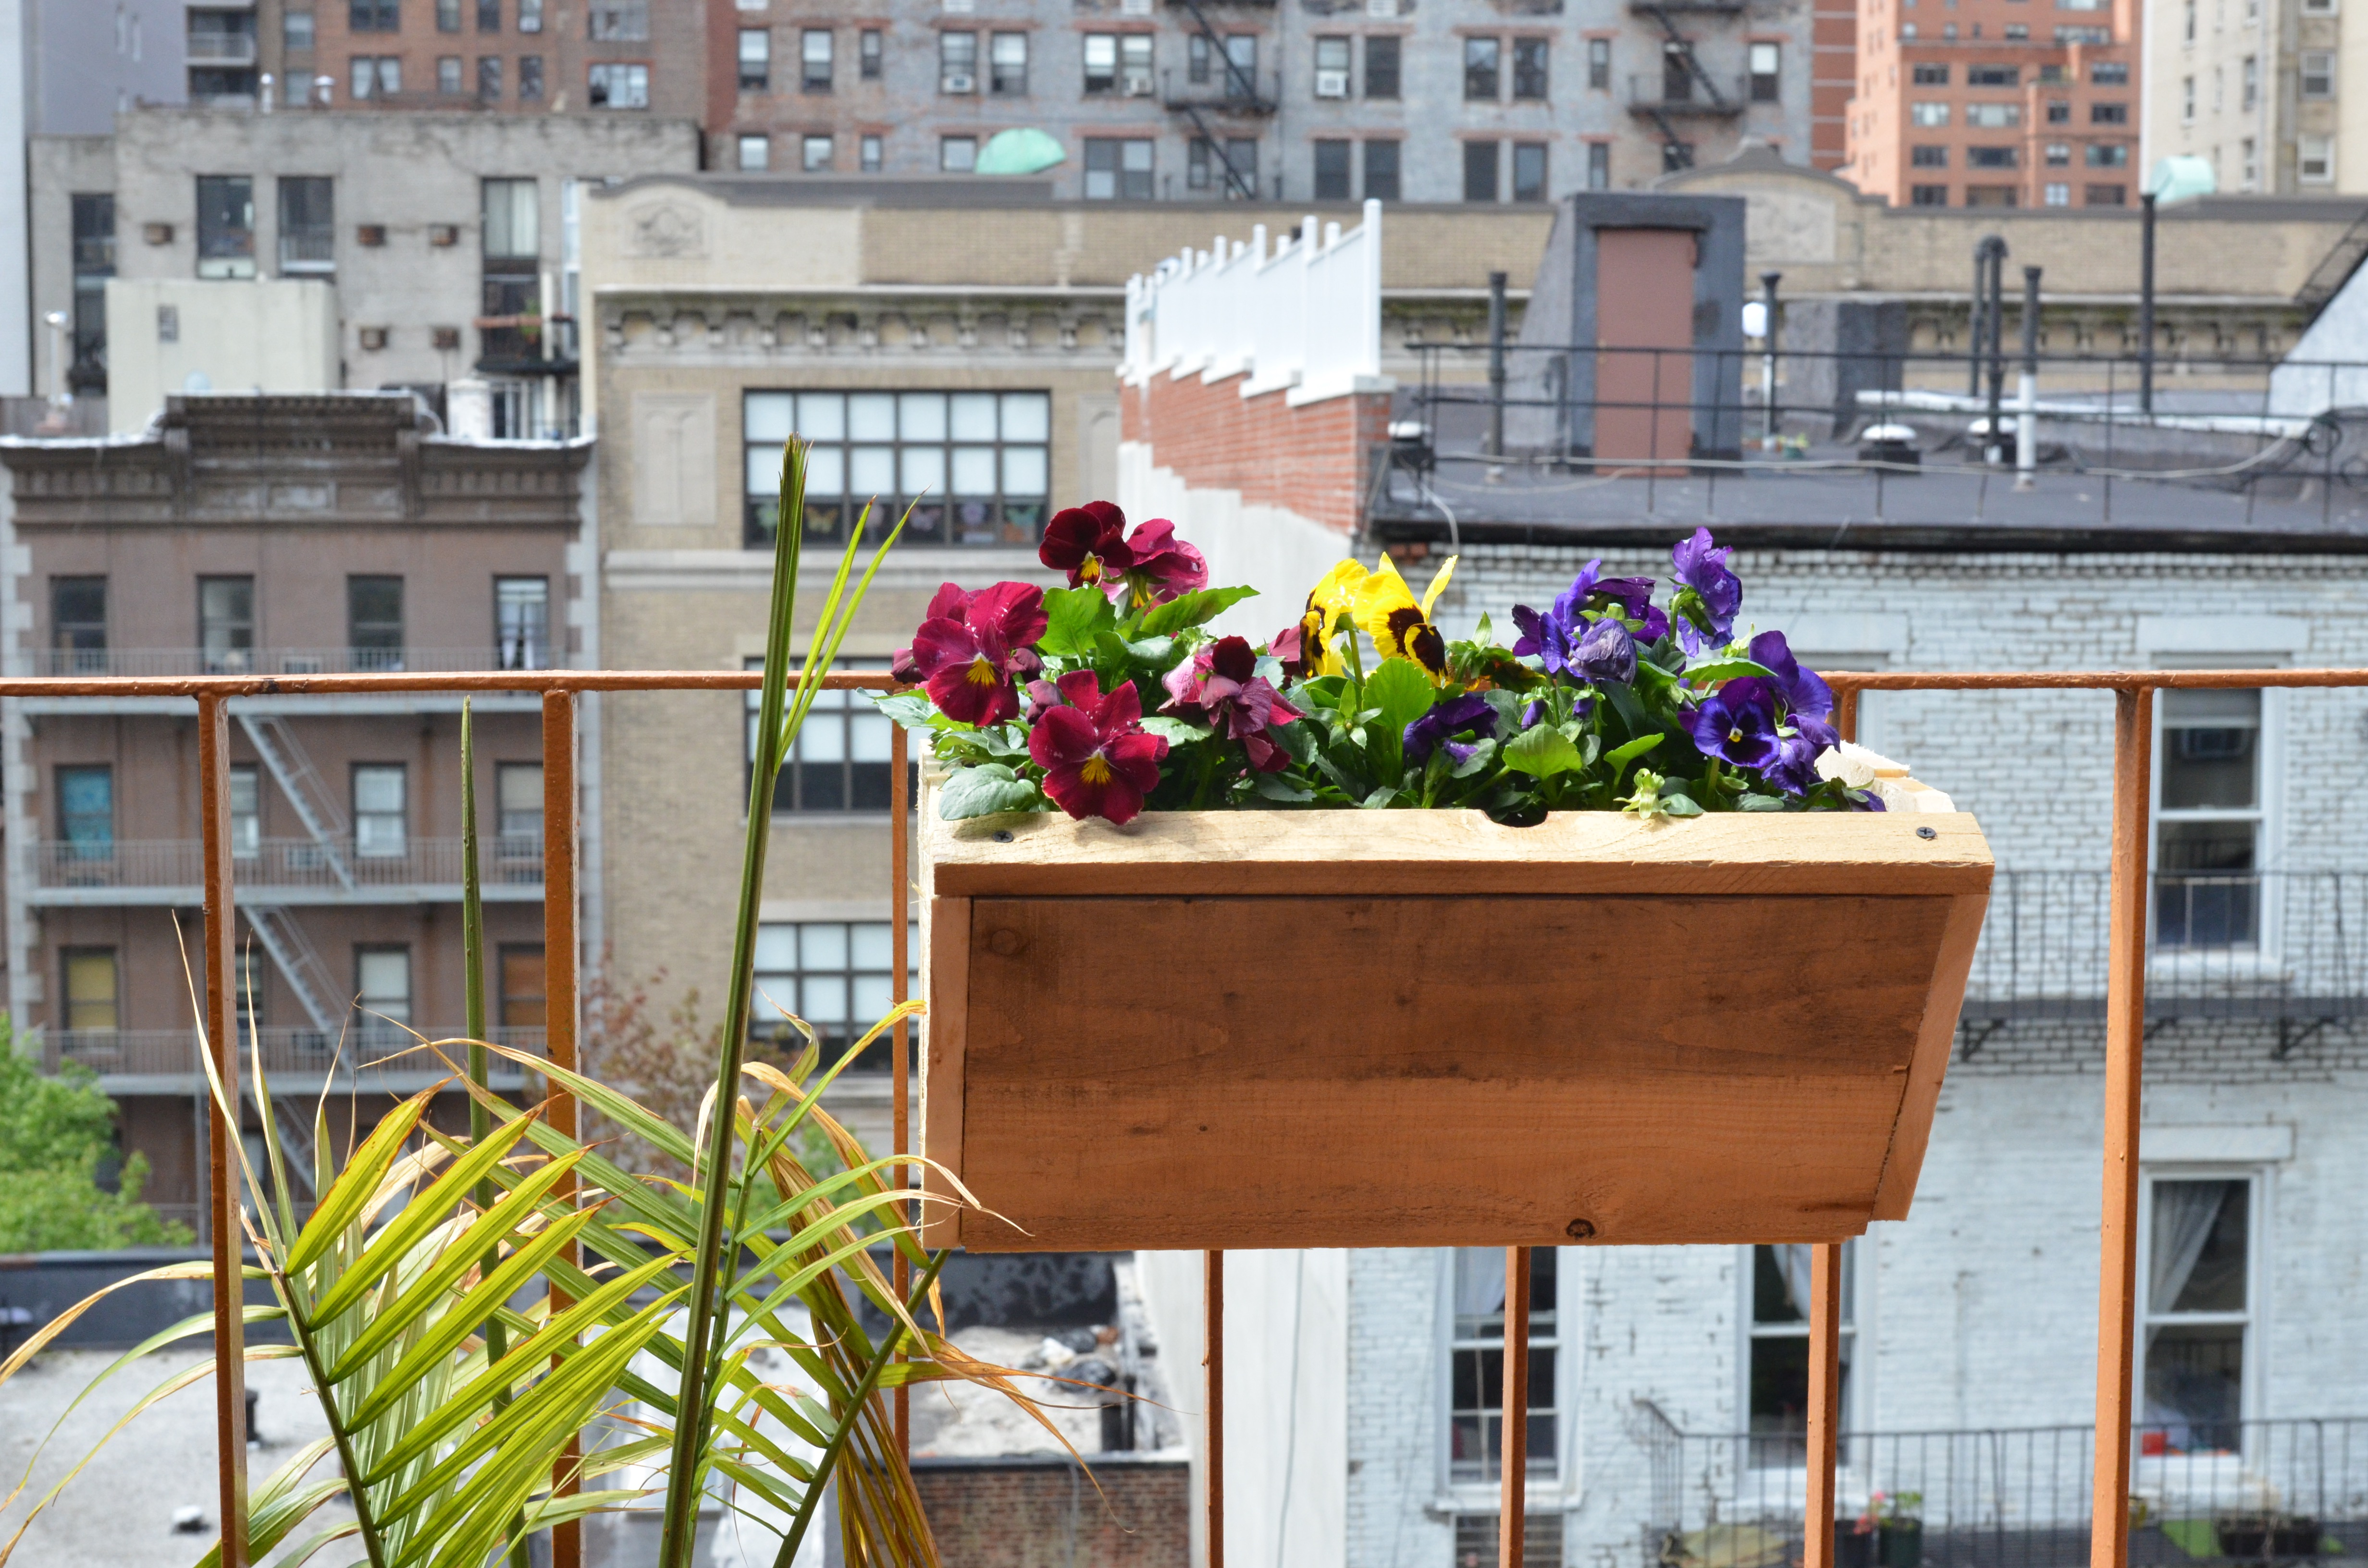 pansies on balcony garden in NYC